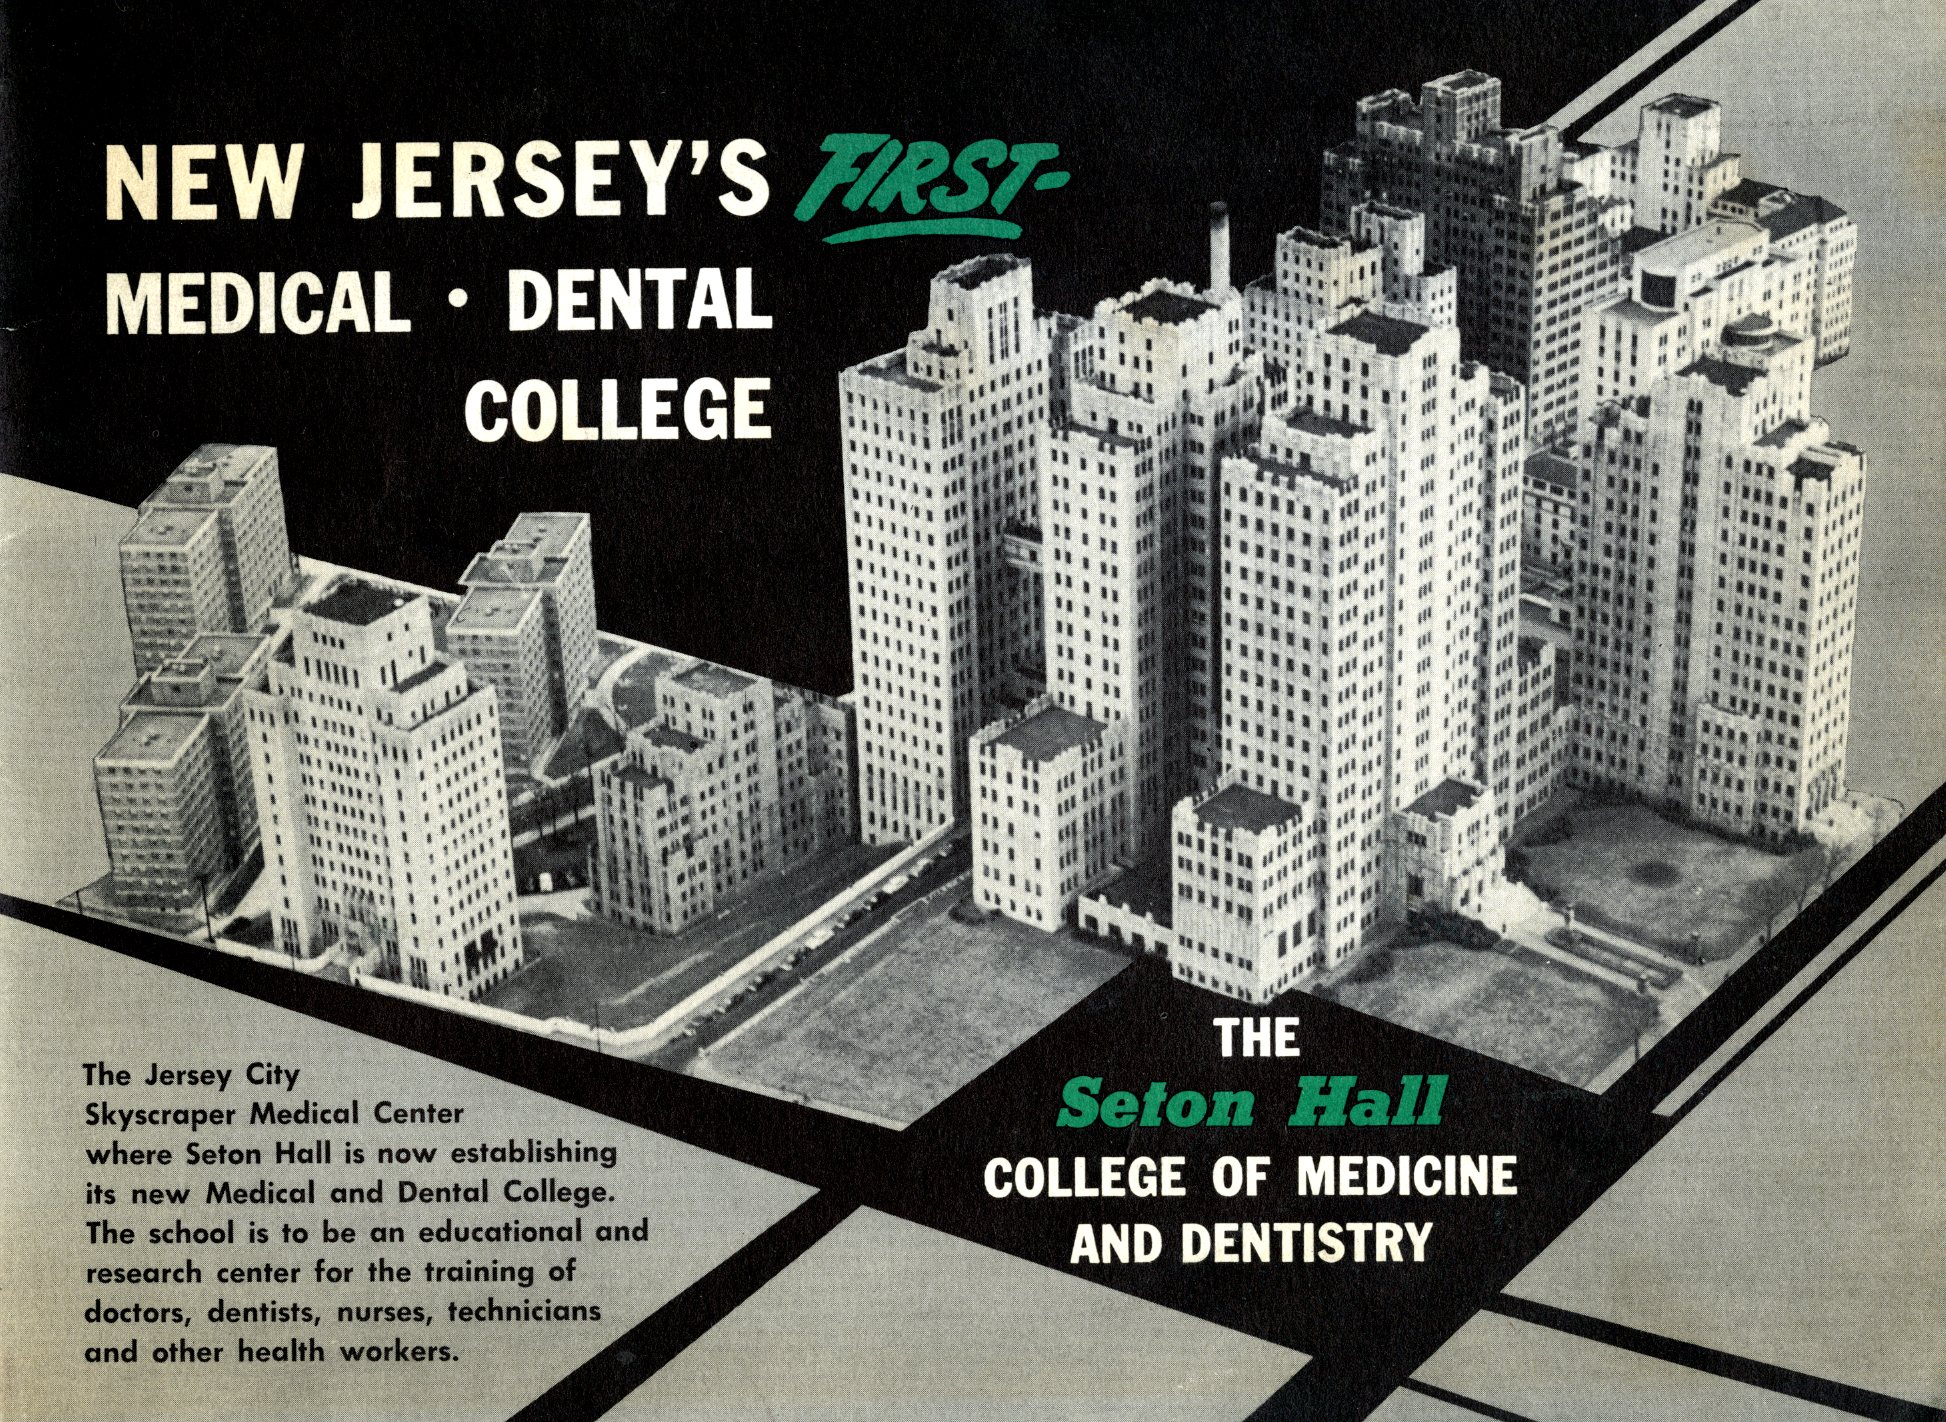 New Jersey's first medical-dental college, the Seton Hall college of medicine and dentistry